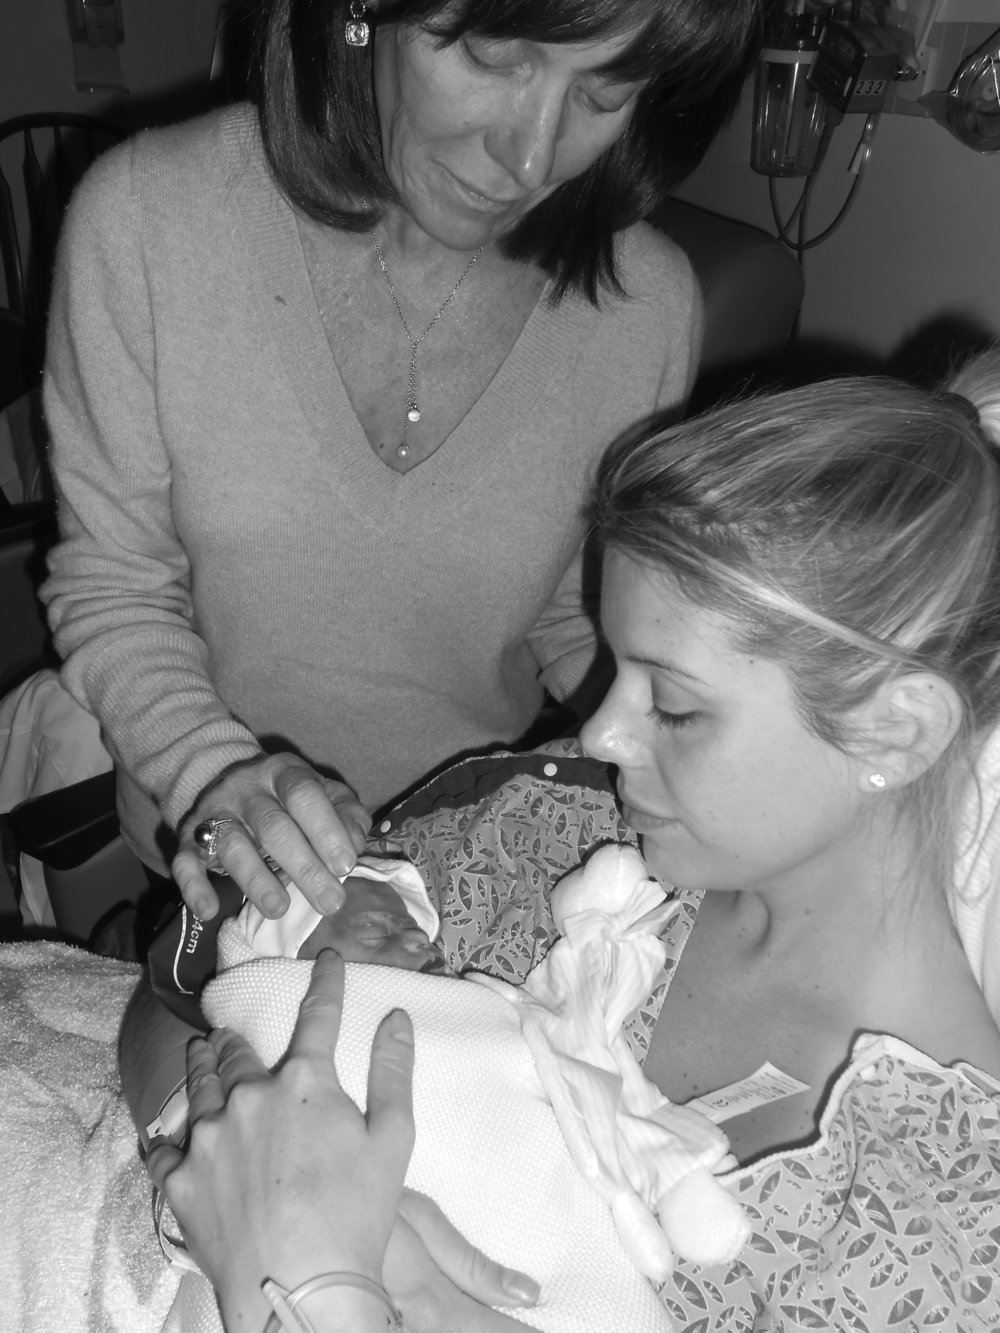 Losing Grace - a mother's impossible choice. Read more from Holl & Lane at hollandlanemag.com